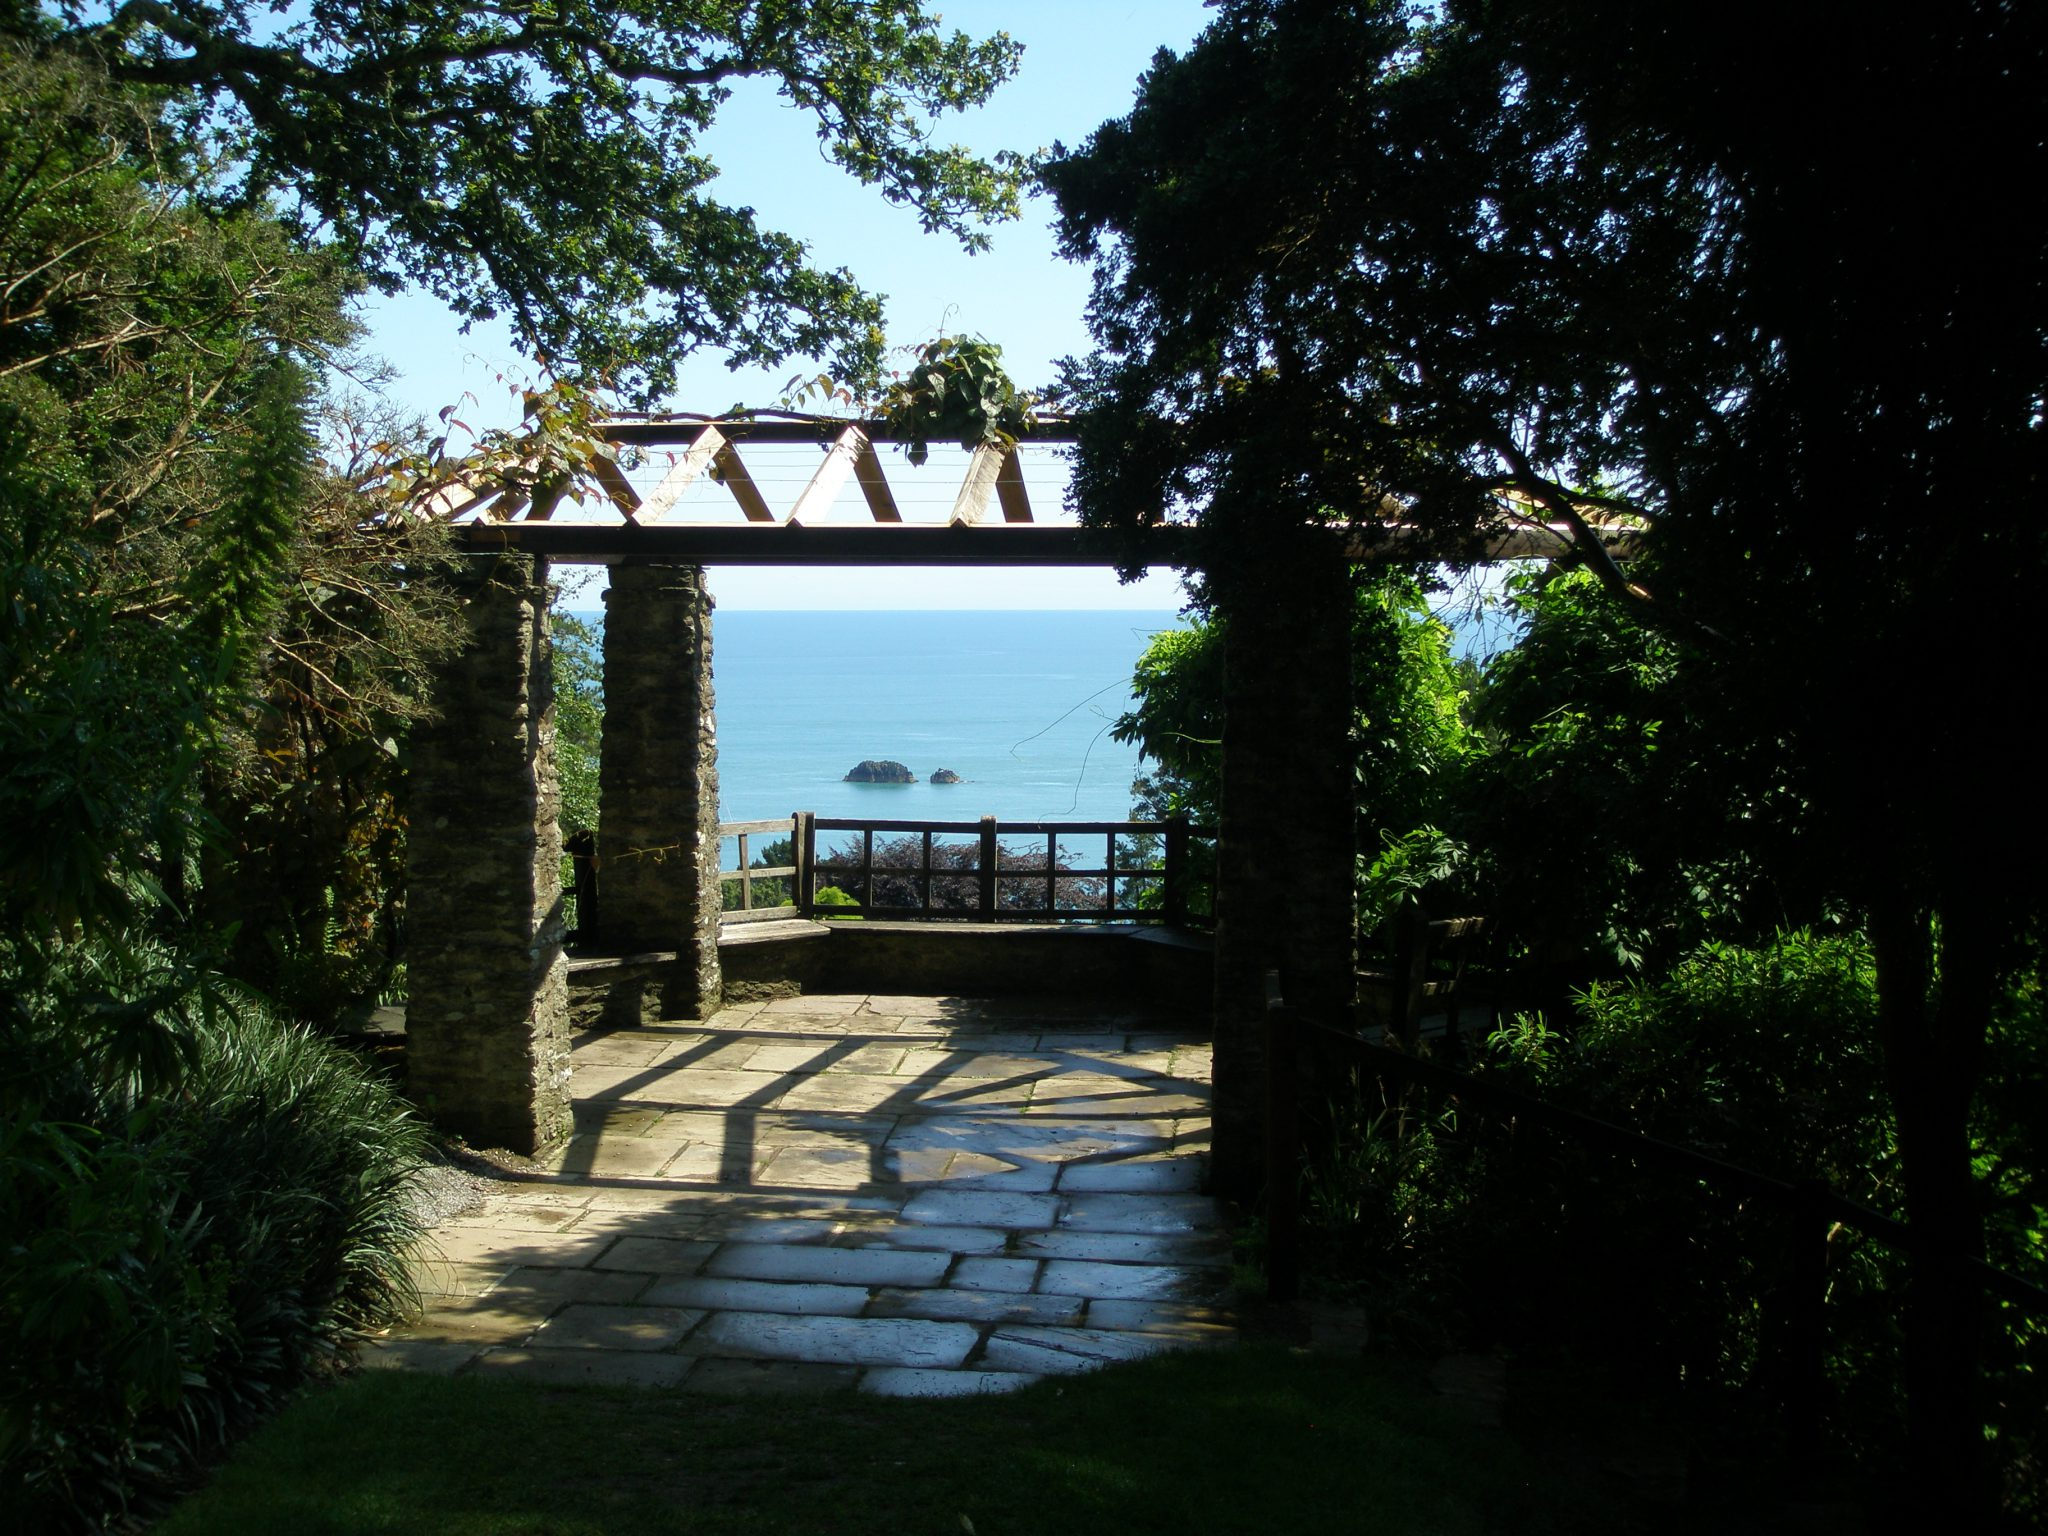 The hexagonal Gazebo, with stone pillars and wooden trellis supporting wisteria, has a spectacular ocean view. When first built, the Gazebo also had a clear view, back to the House.